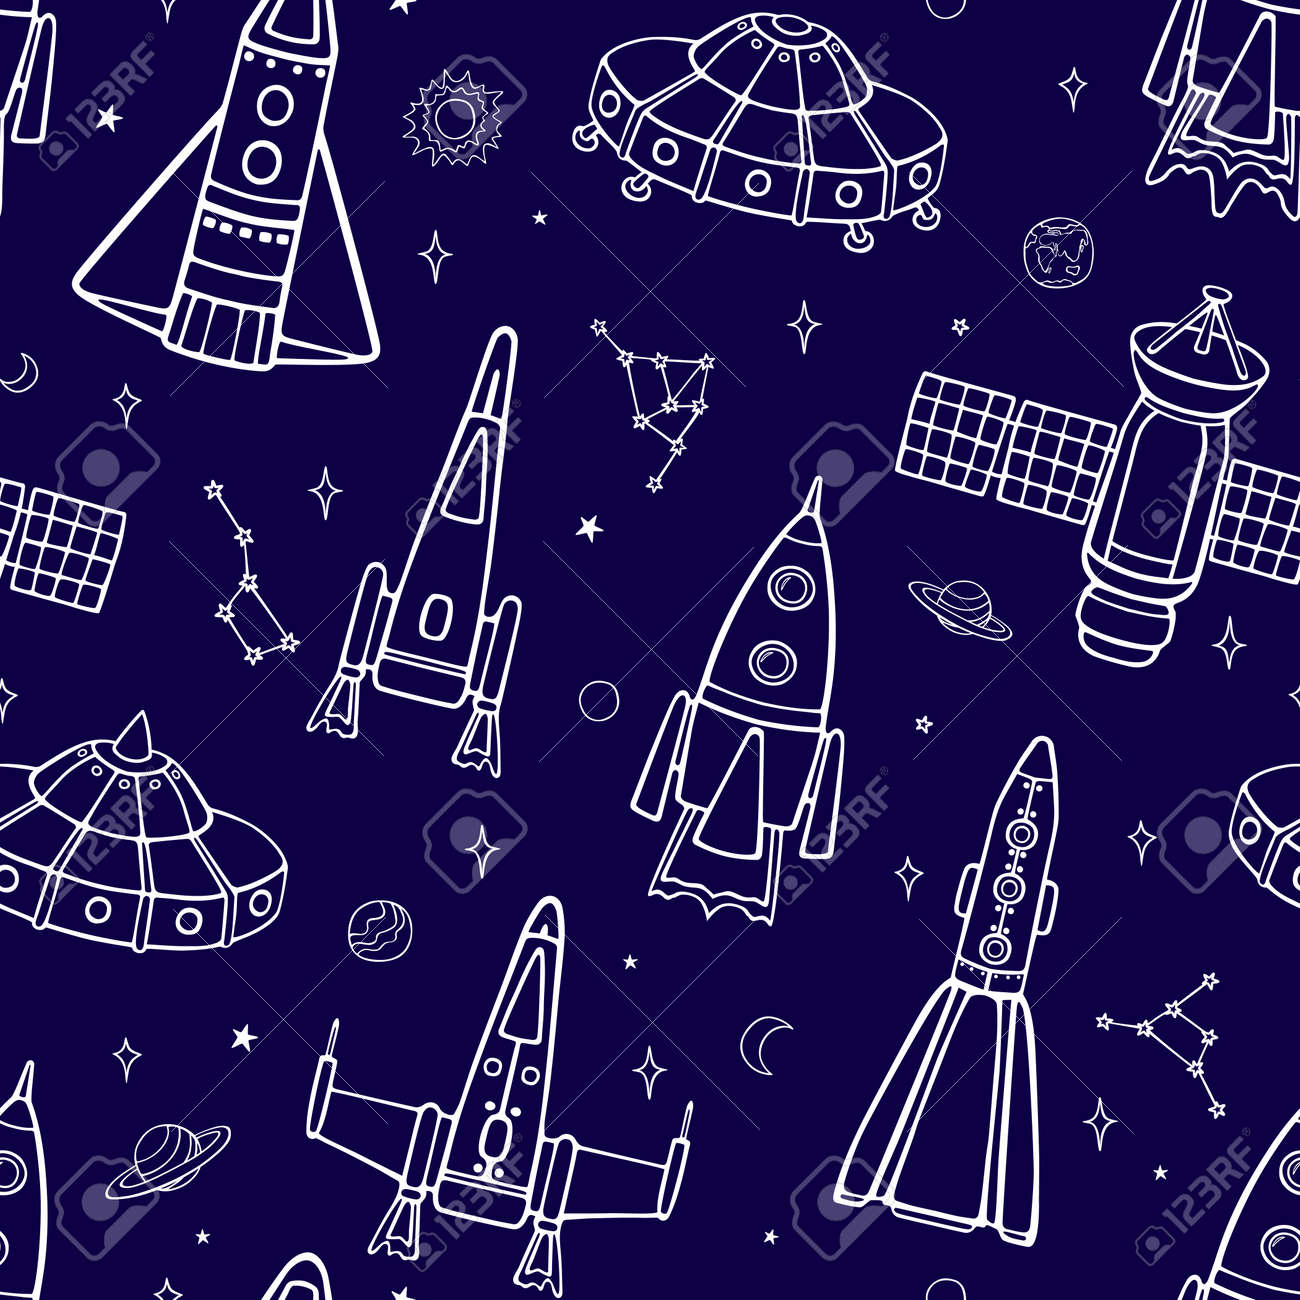 Cartoon flying spaceships in outer space among the planets and stars. Seamless vector pattern on a blue background. - 165461030